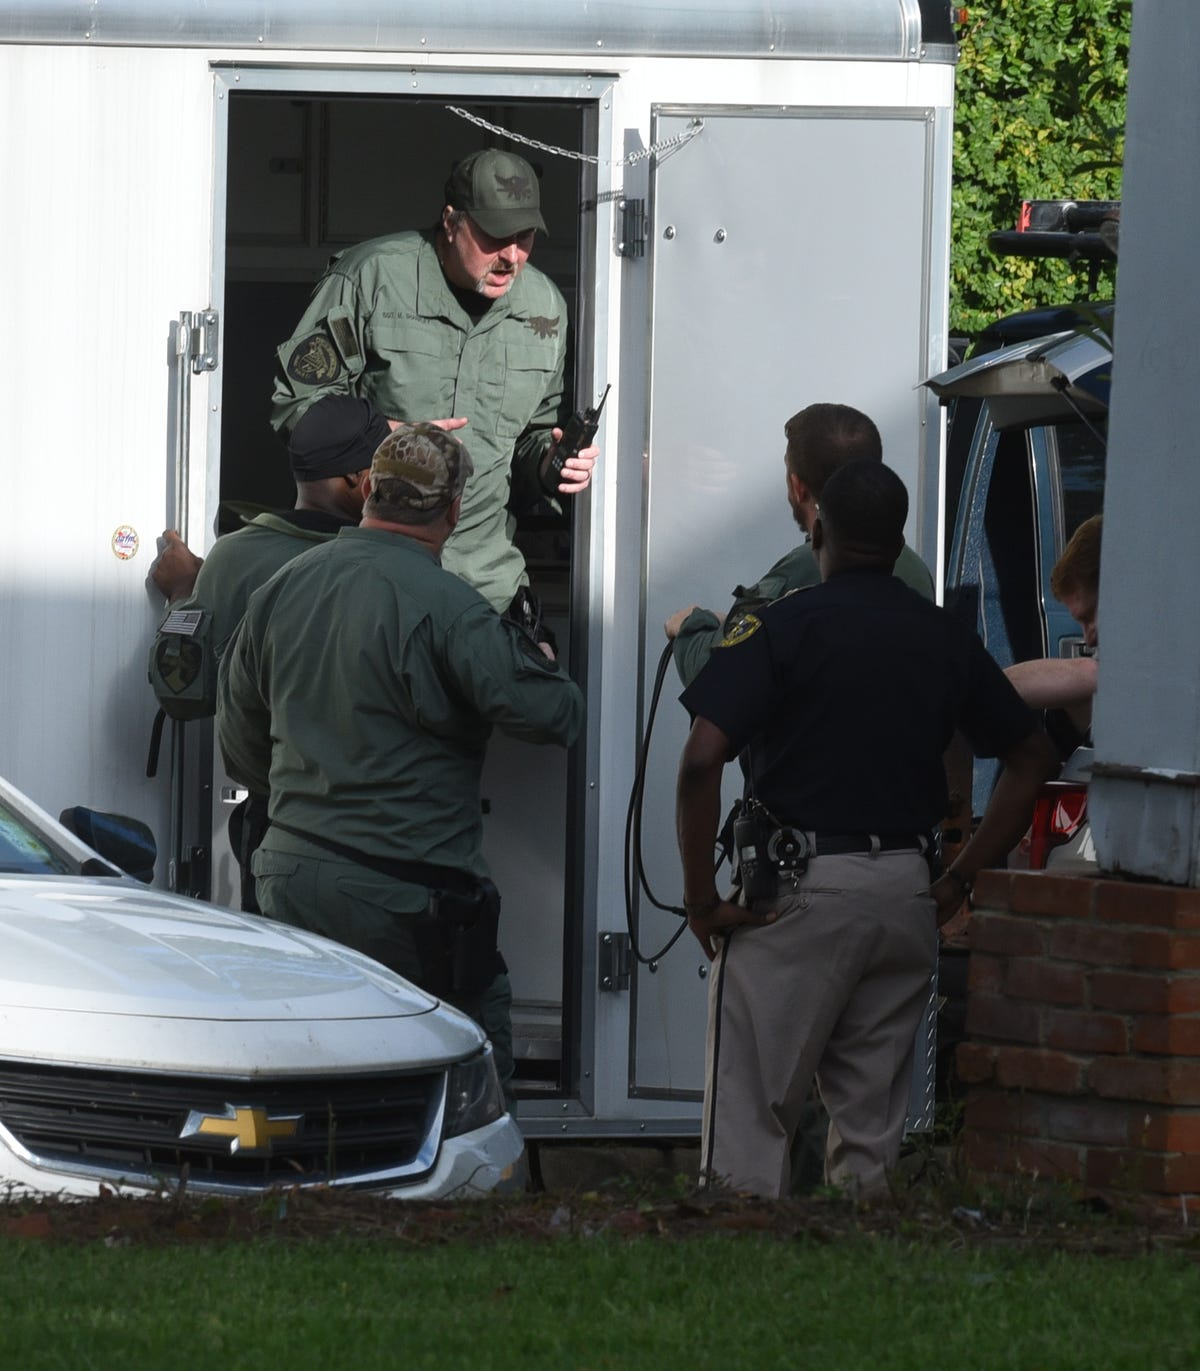 Standoff ends peacefully, suspect in custody